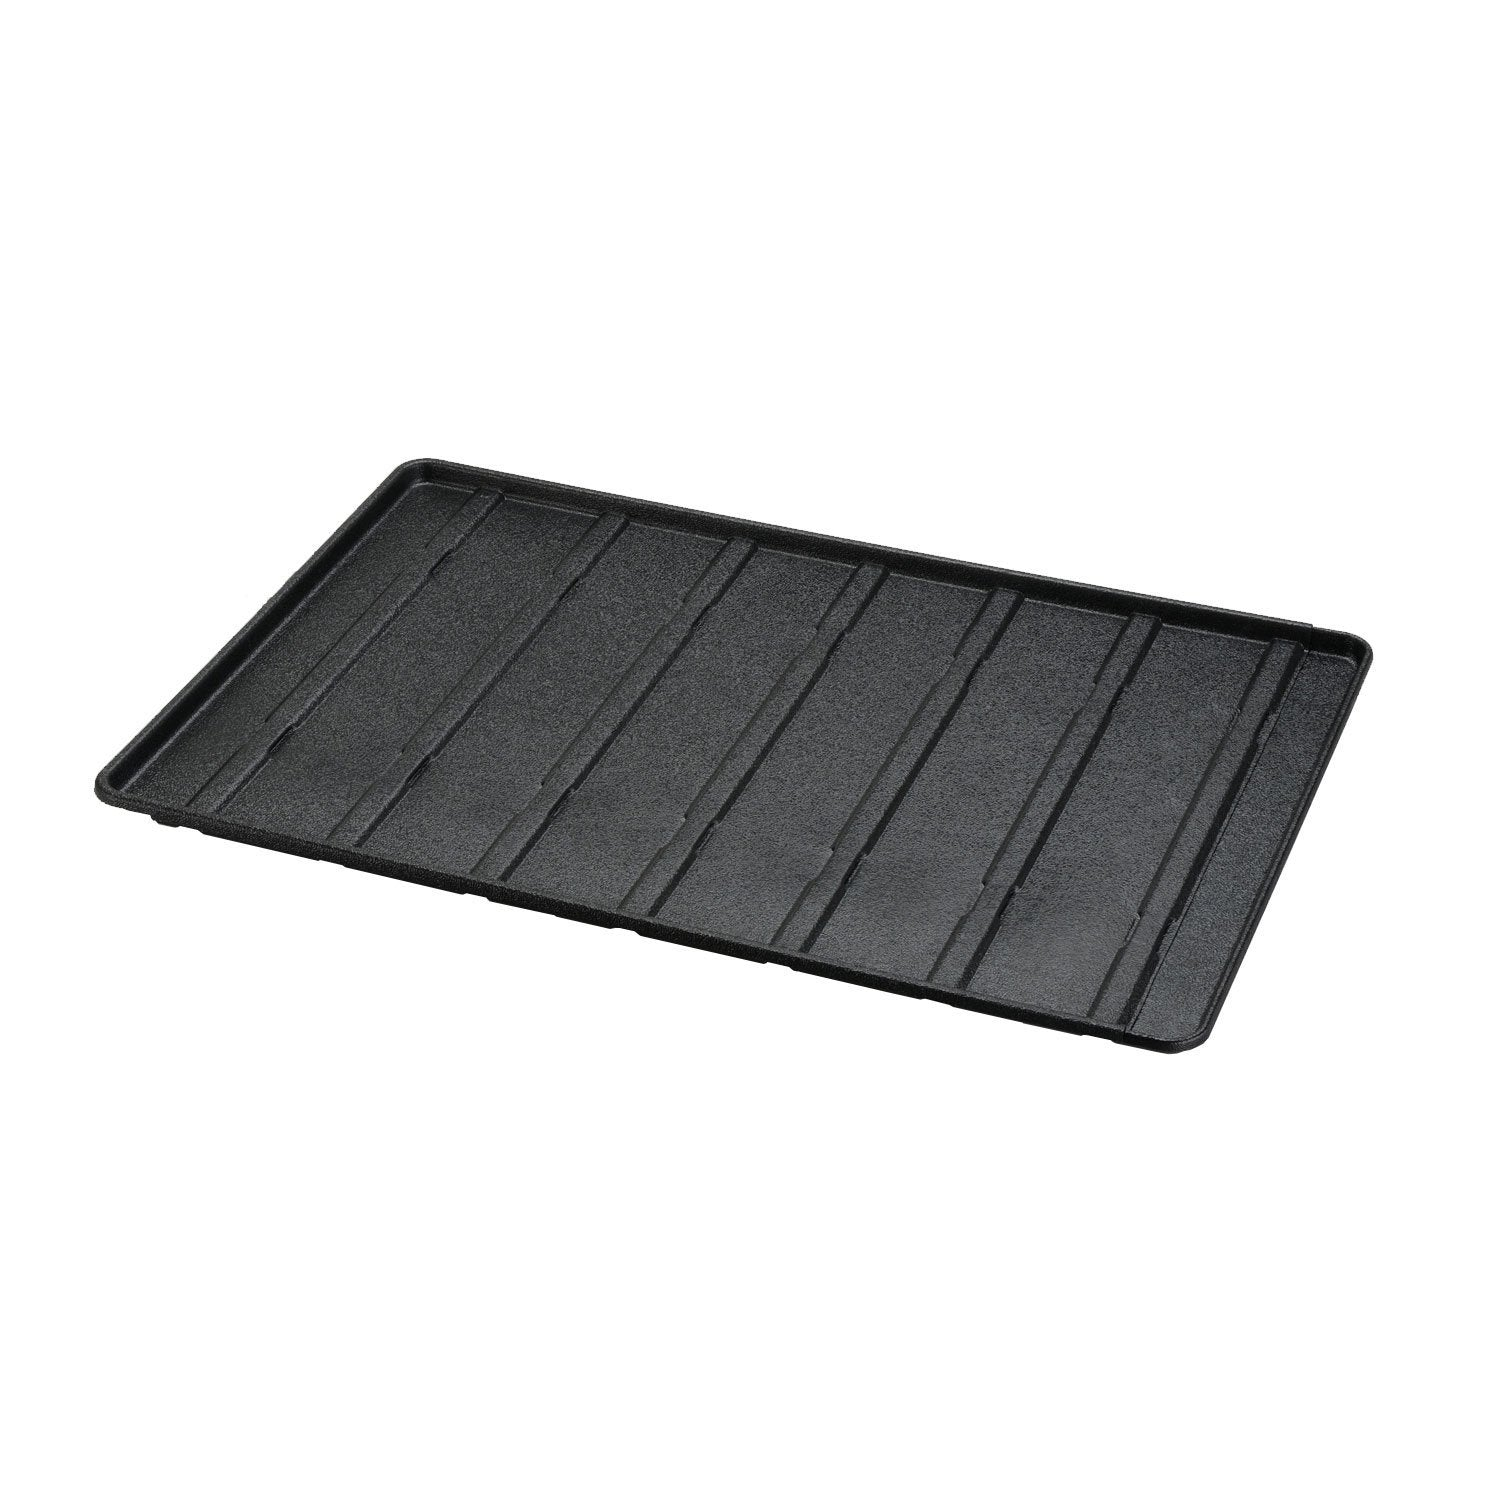 Richell Expandable Floor Tray Small Black 37″-62.2″ x 24.8″ x 1″